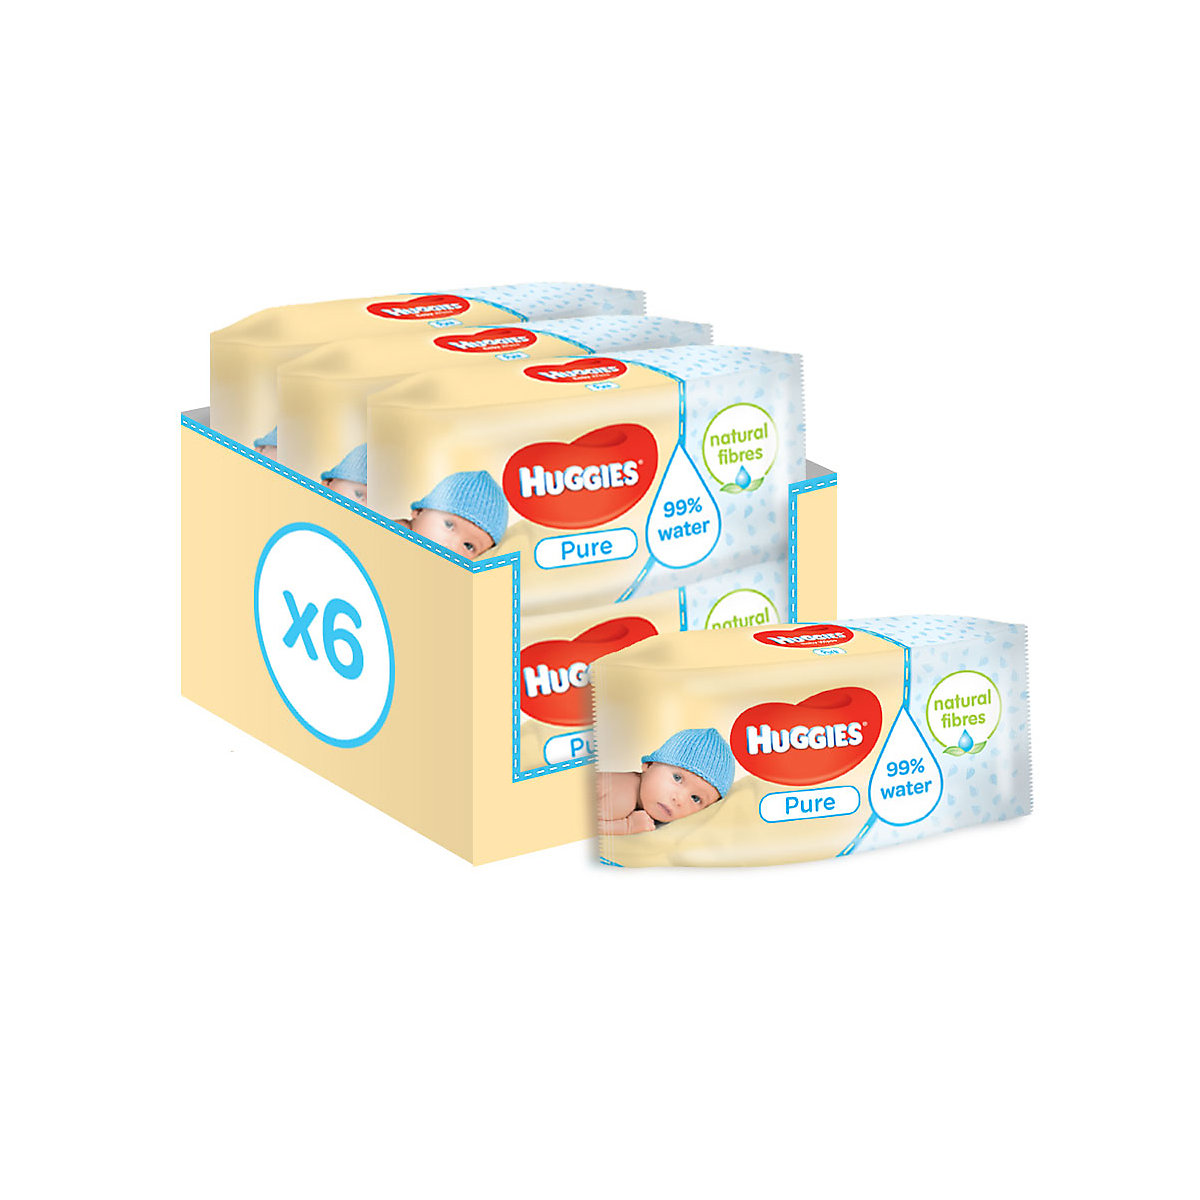 Huggies pure wipes - 6 x 56 wipes